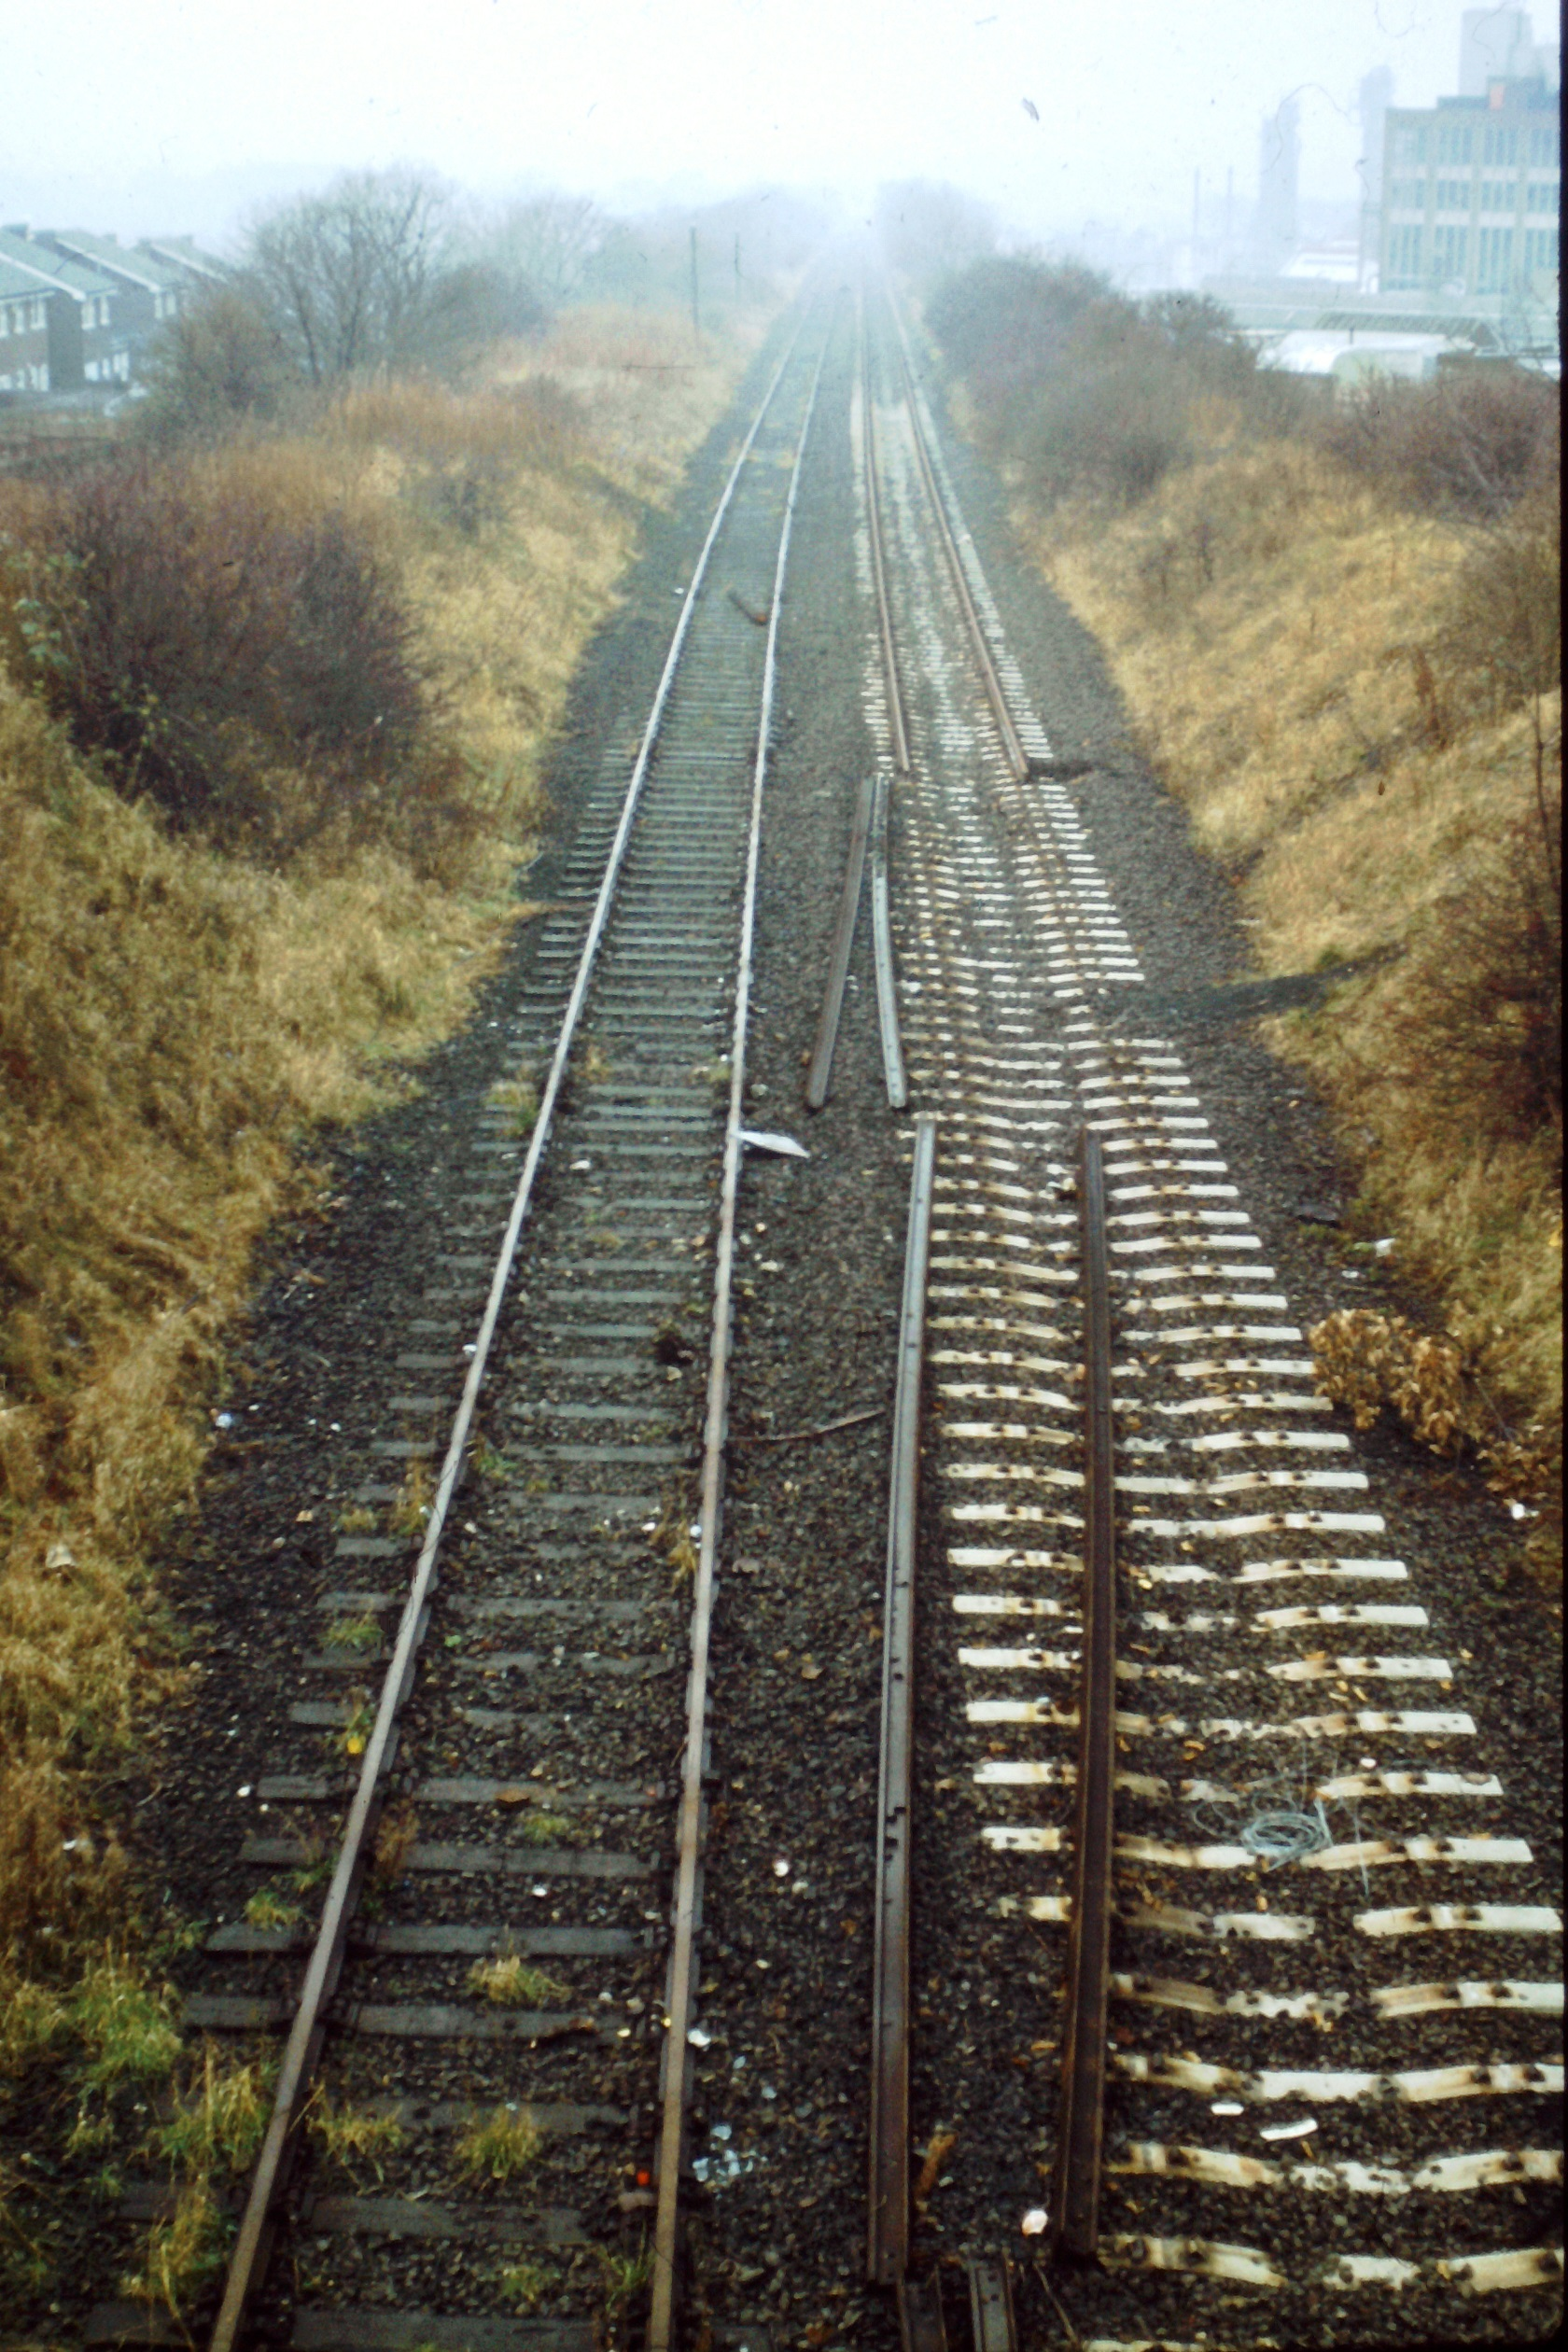 This vertical format view taken 4121982 shows the Washington - South Pelaw line at Picktree some 2 years after closure of Consett steel works